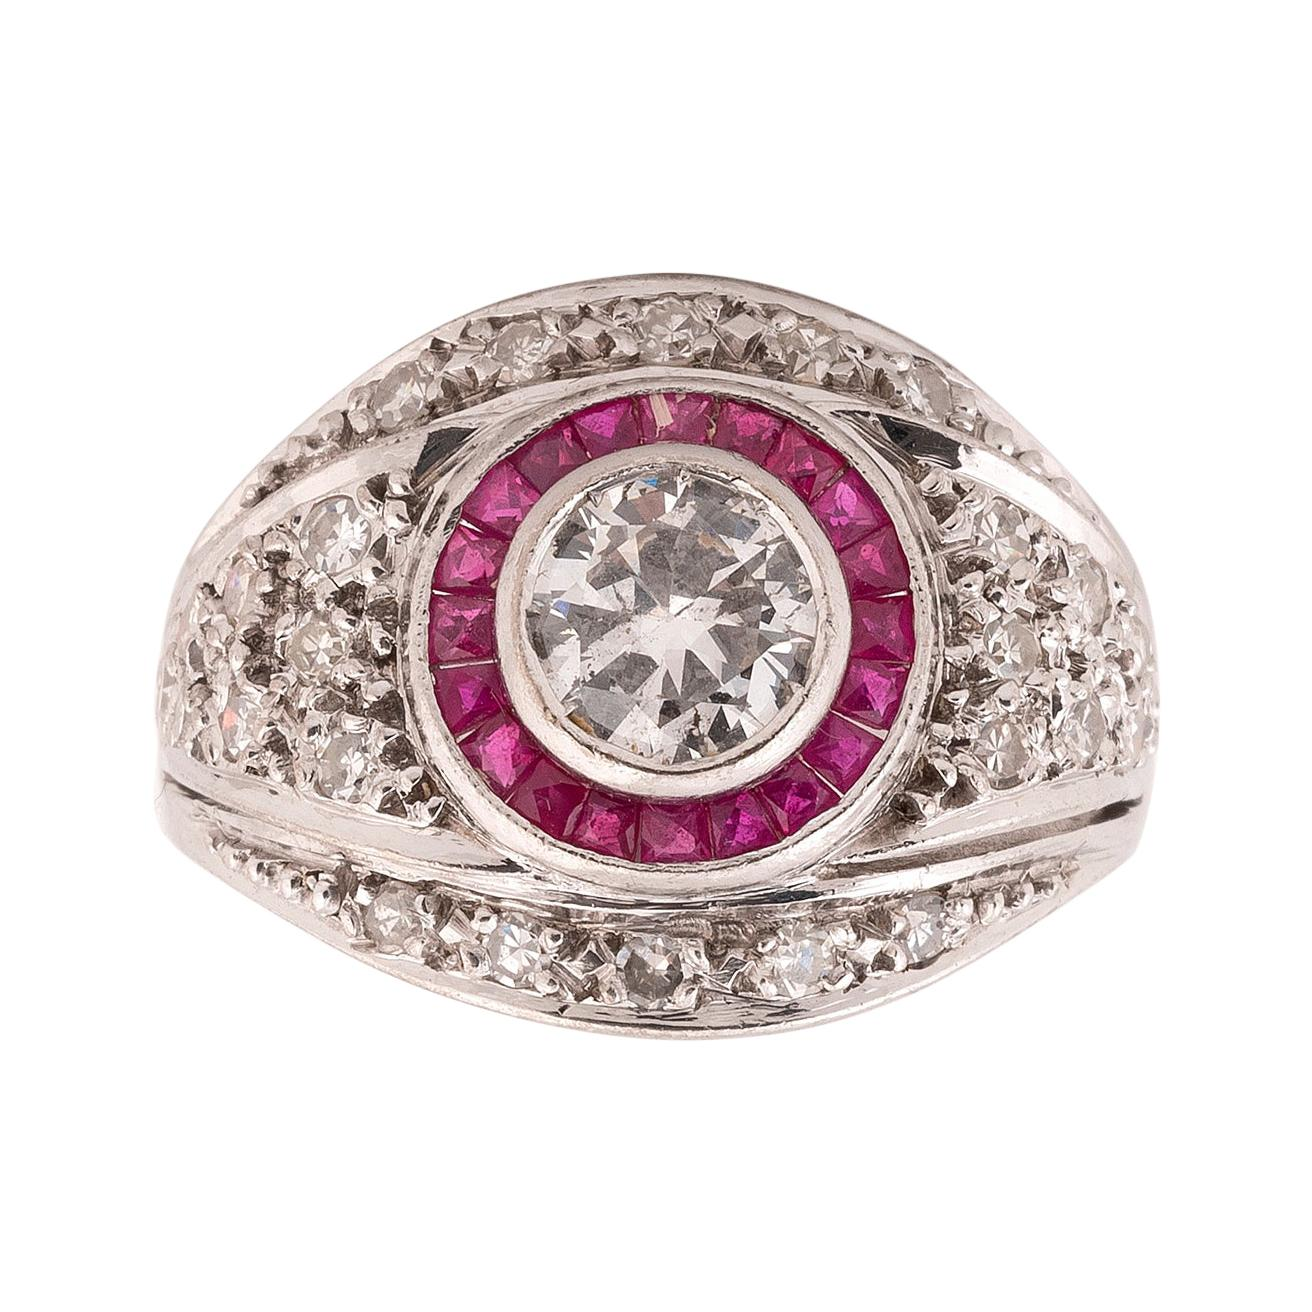 1.4 Carat Old Cut Diamond and Ruby Cluster Platinum Ring